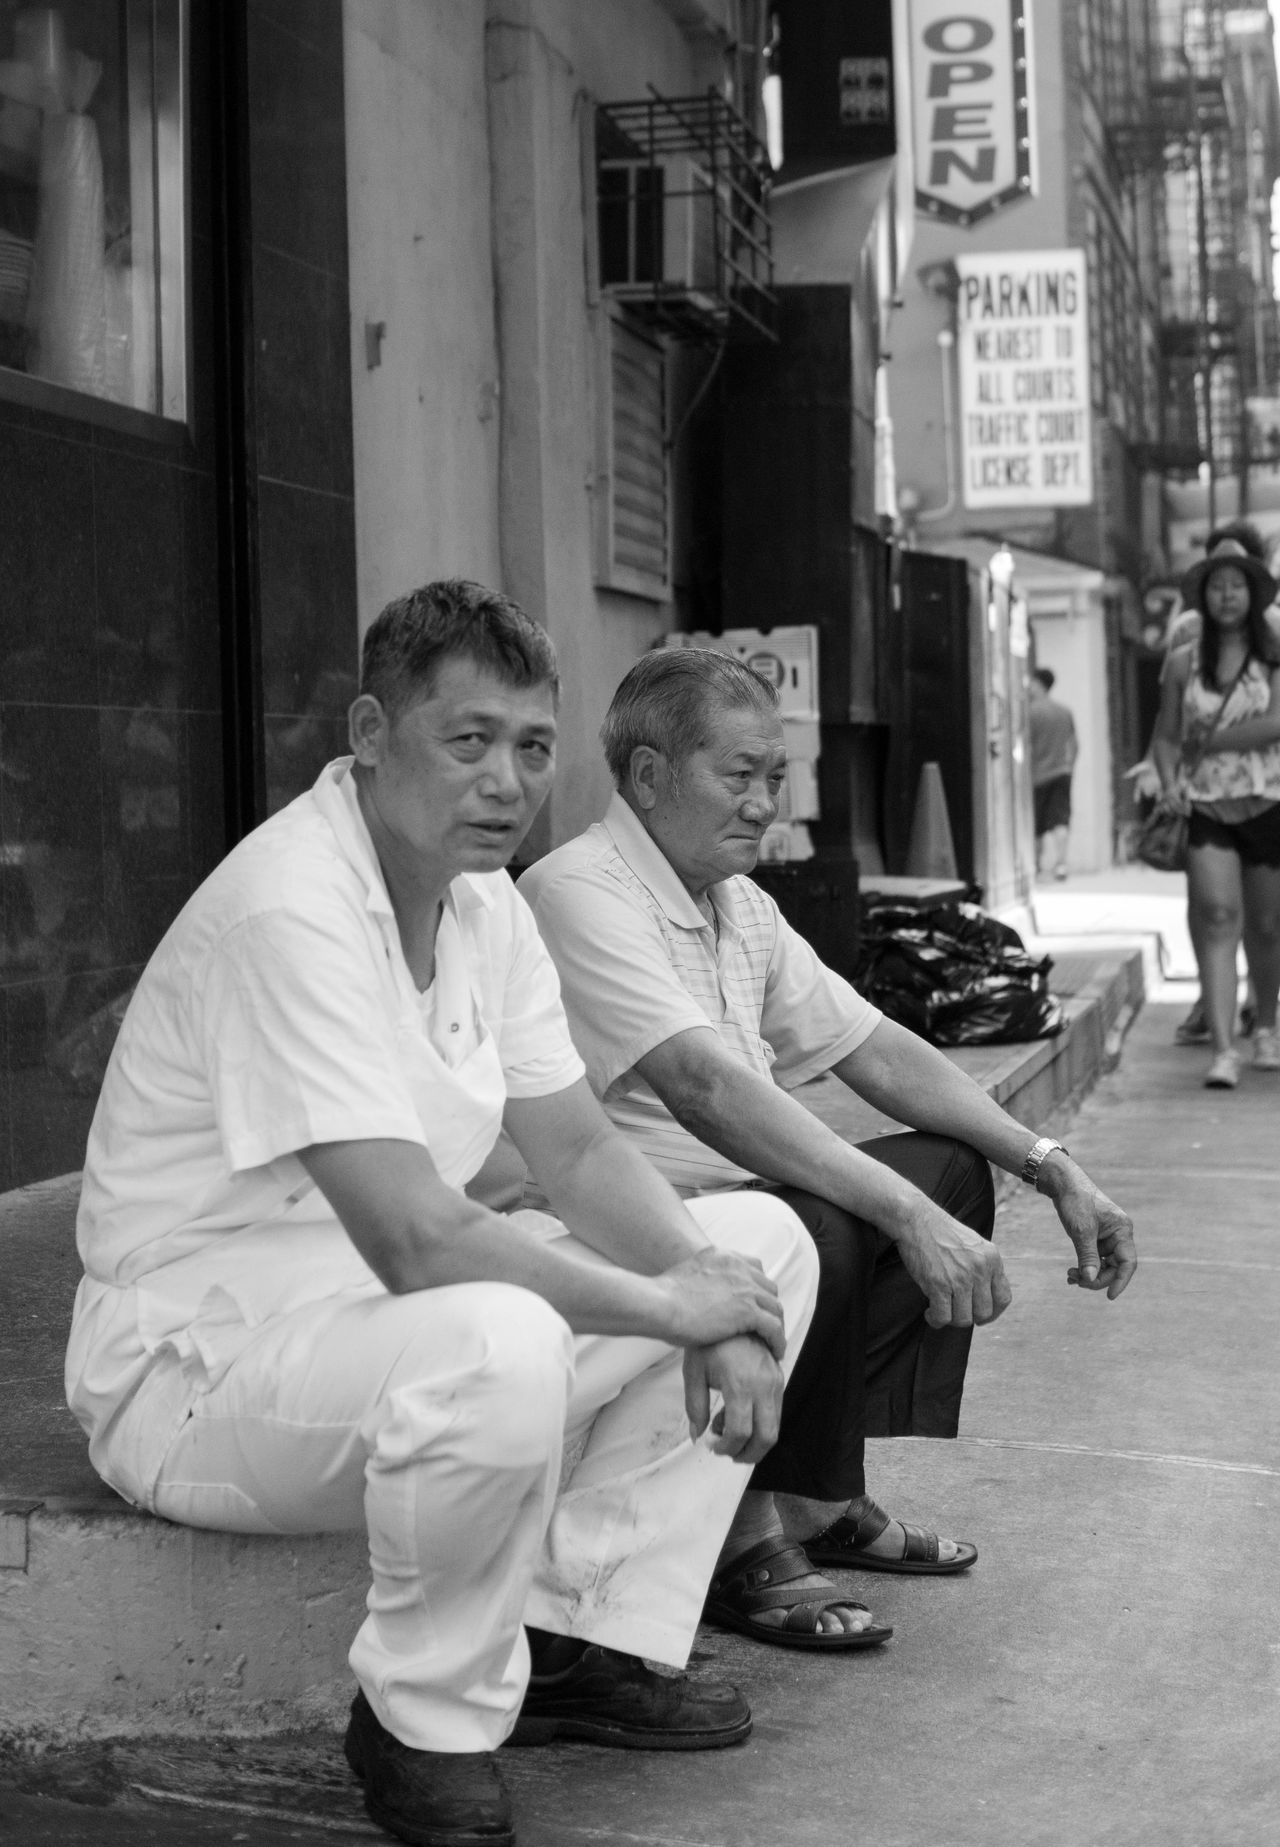 Chinatown, New York. A break from cooking. Black And White Chefs Chinatown New York Cigarette Time Leisure Activity Lifestyles Men New York Newyorkcity Occupation Real People Sitting Streetphotography First Eyeem Photo Showcase: December